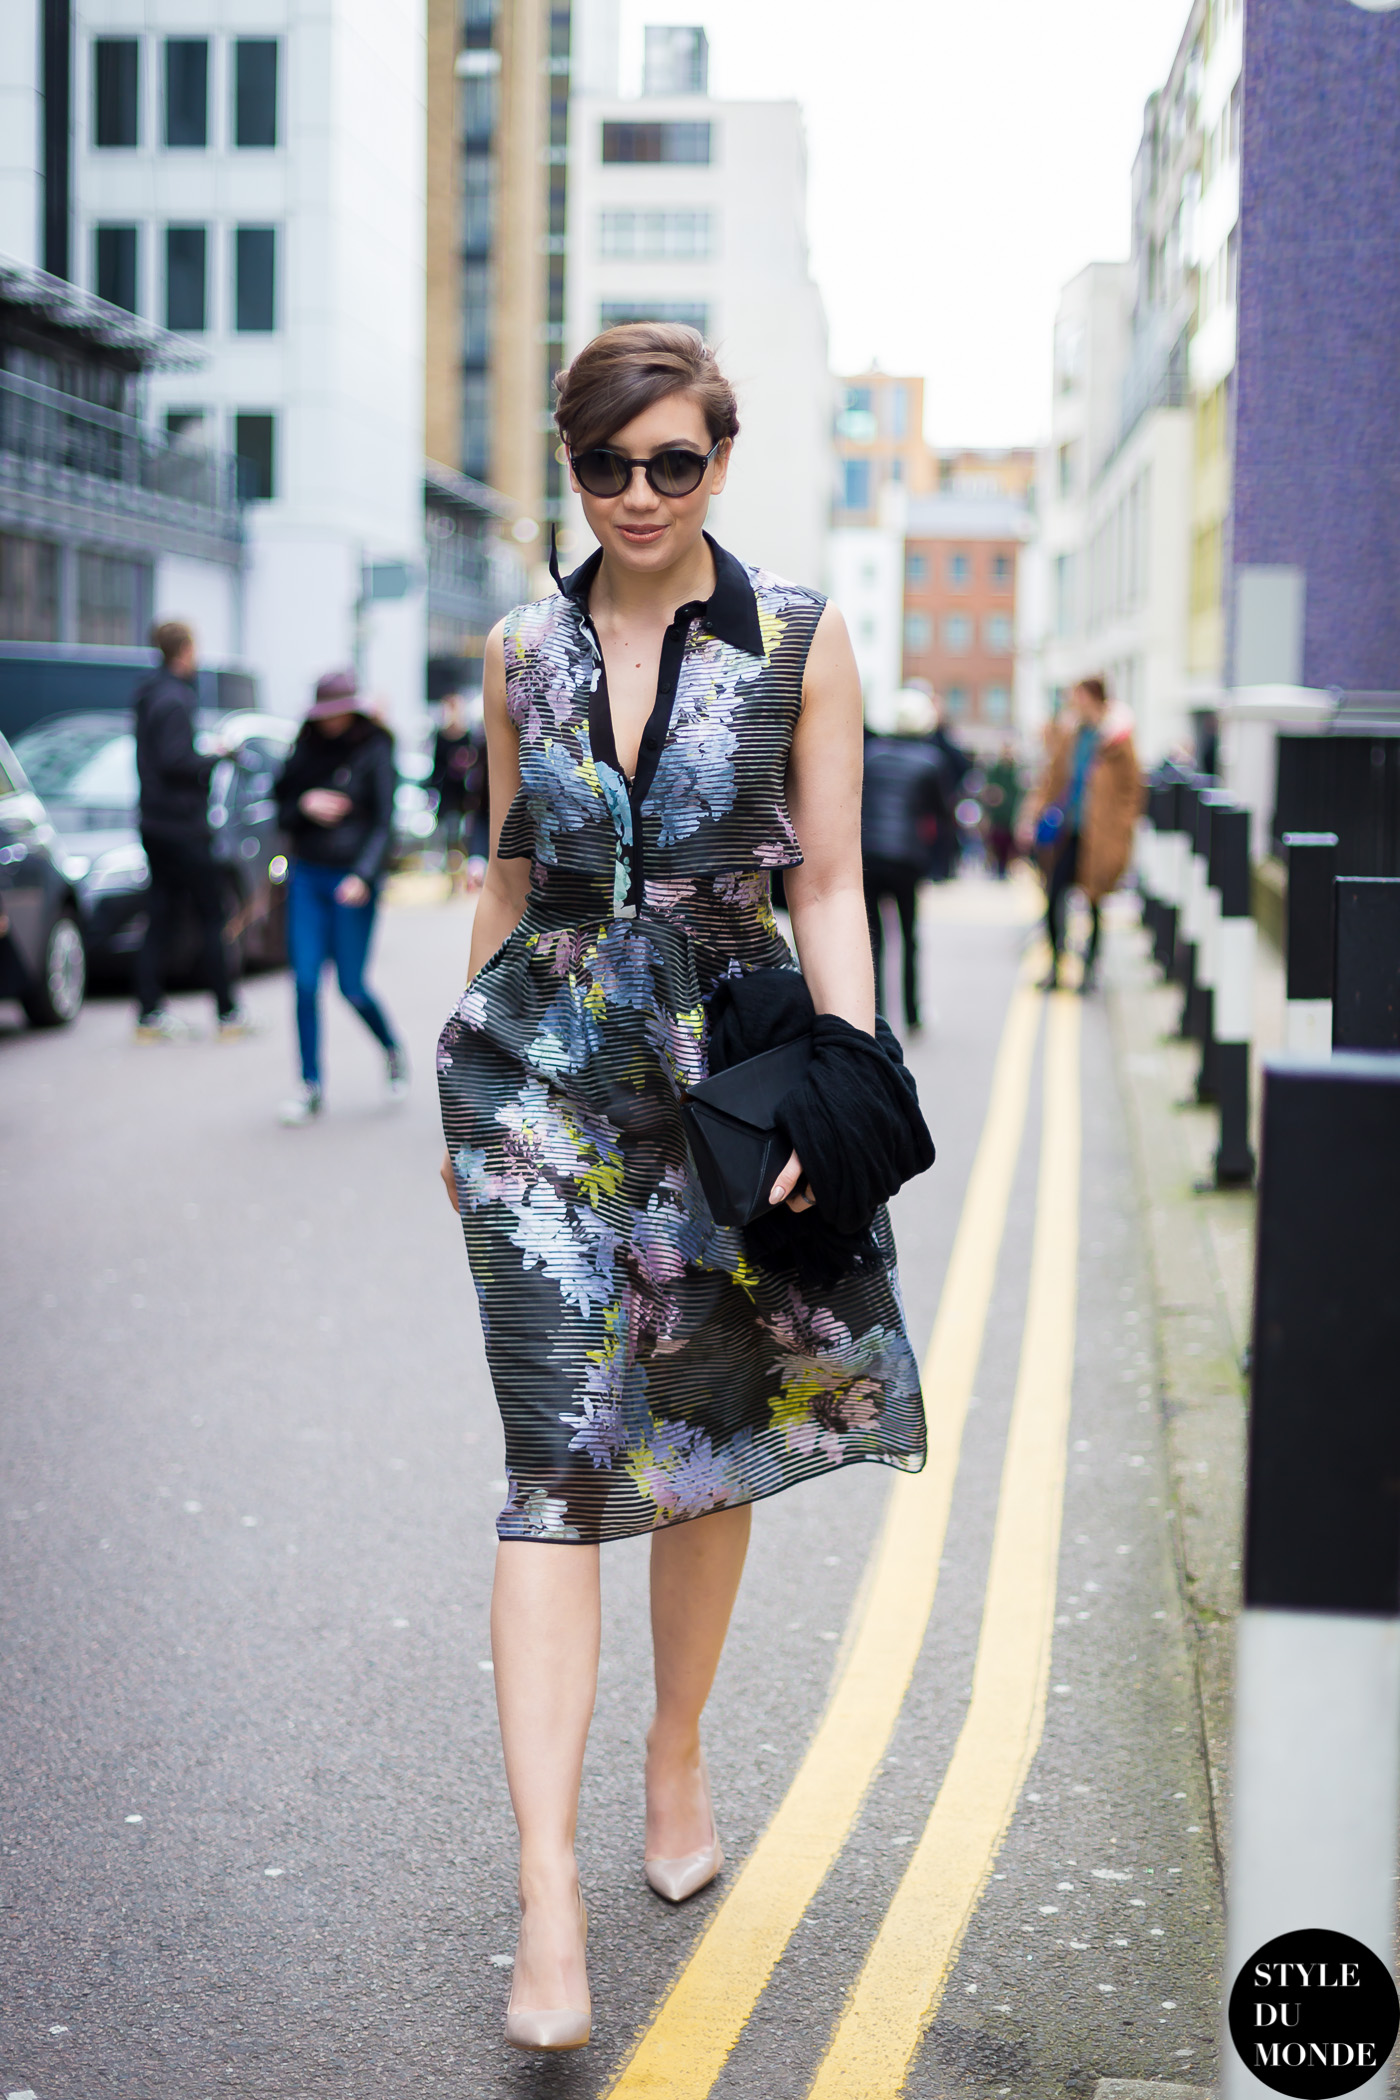 Daisy Lowe Street Style Street Fashion by STYLEDUMONDE Street Style Fashion Blog